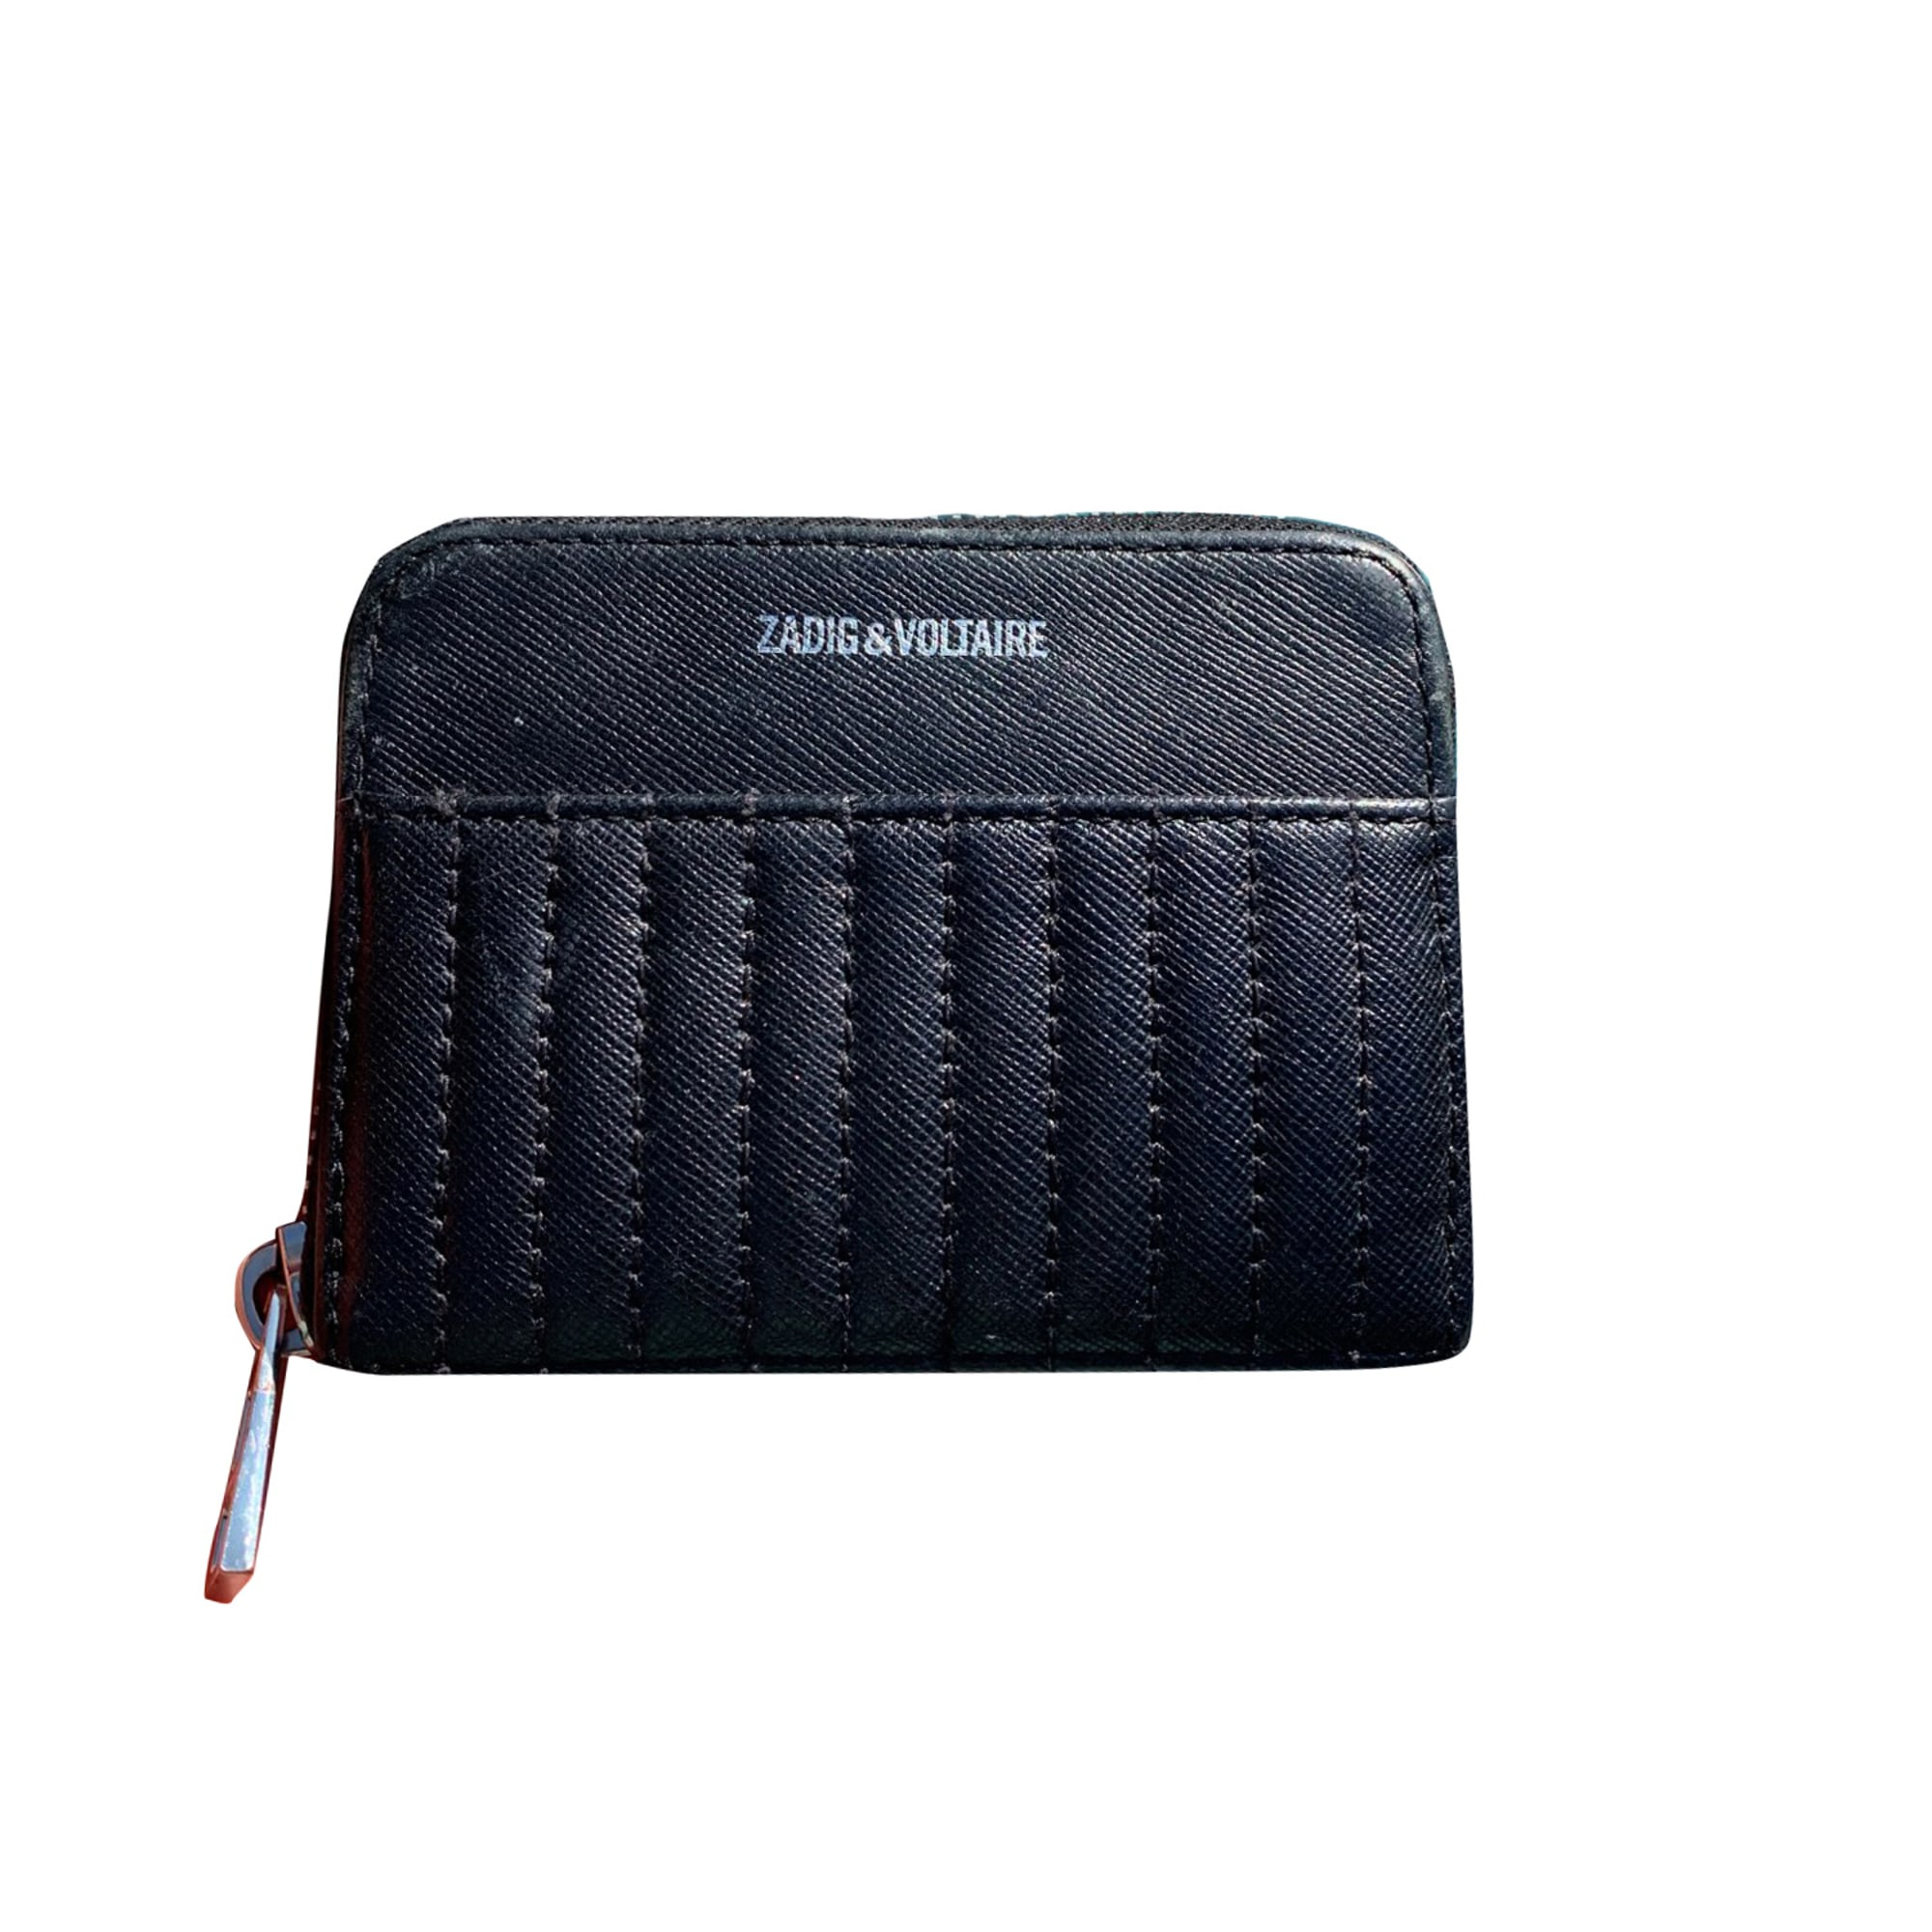 Coin Purse ZADIG & VOLTAIRE Black